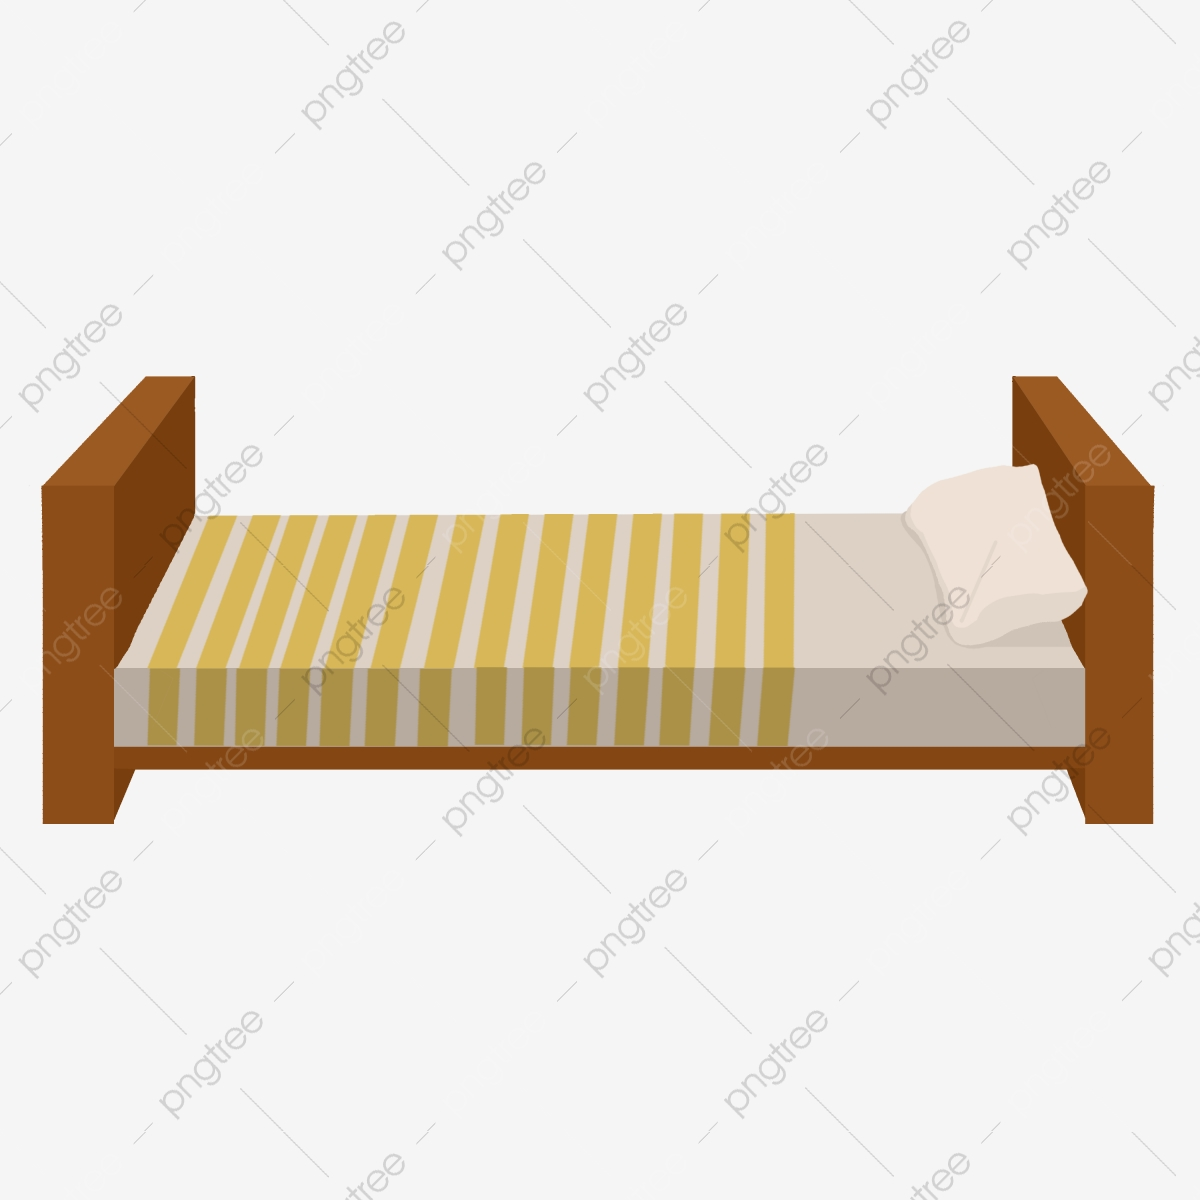 Bed Top View Png Images Vector And Psd Files Free Download On Pngtree